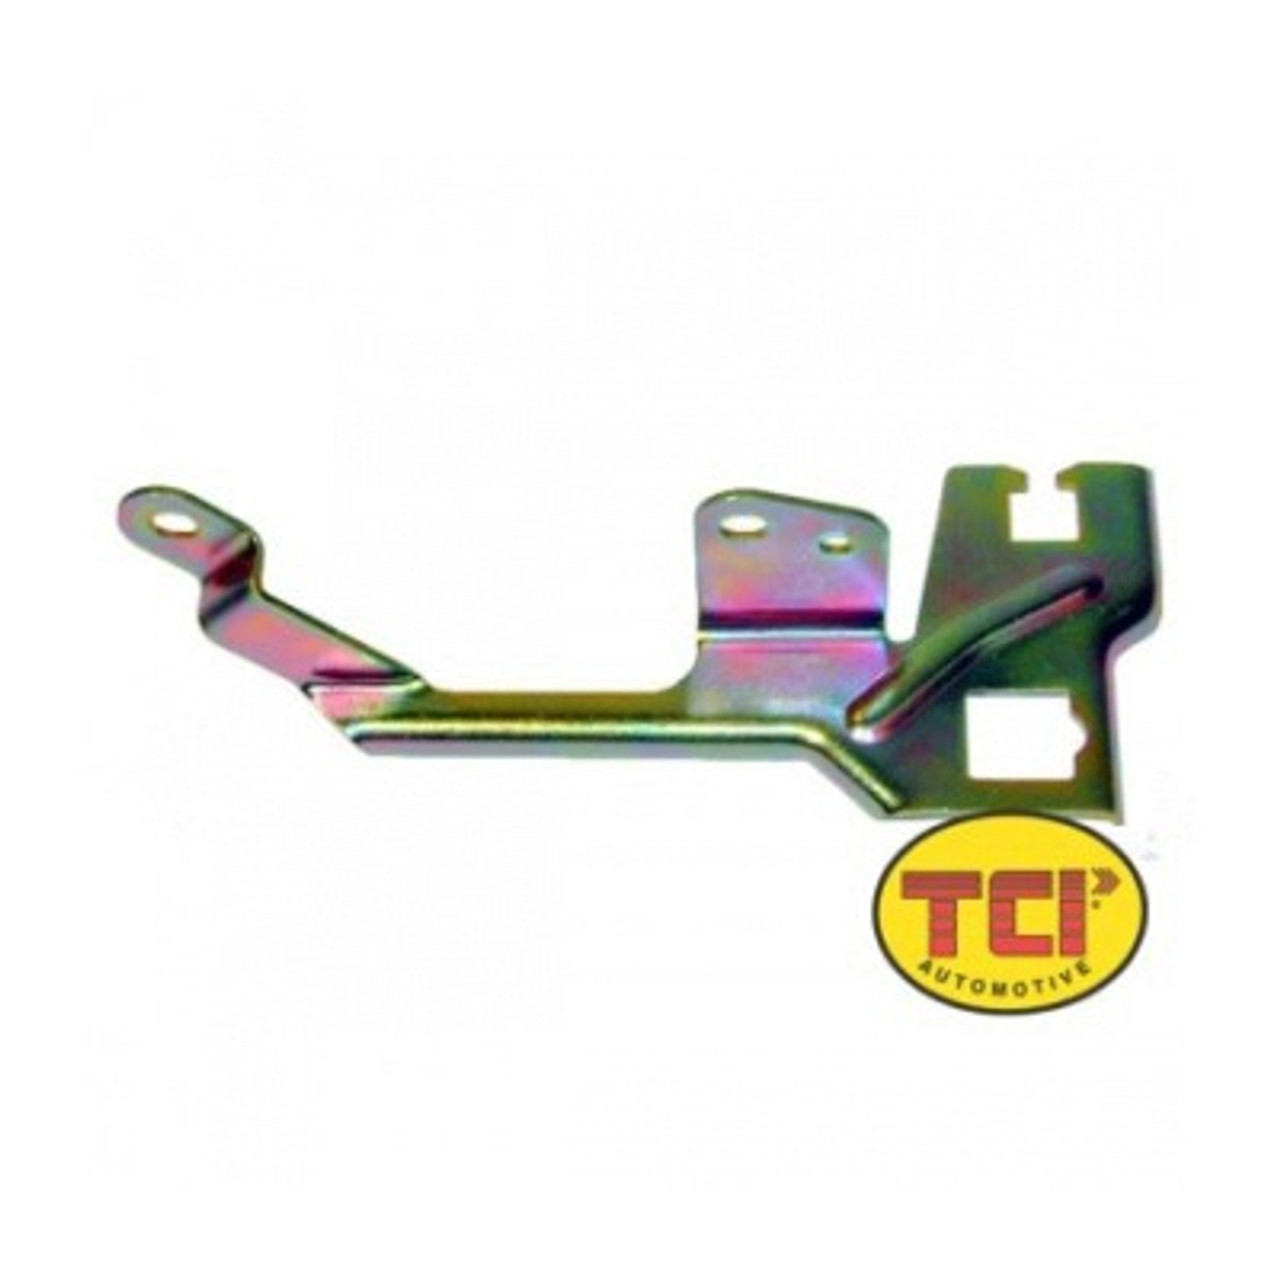 TCI376700, Kickdown Cable Bracket, Edelbrock / Quadrajet Carburetor to 200R4 / 700R4, Kit